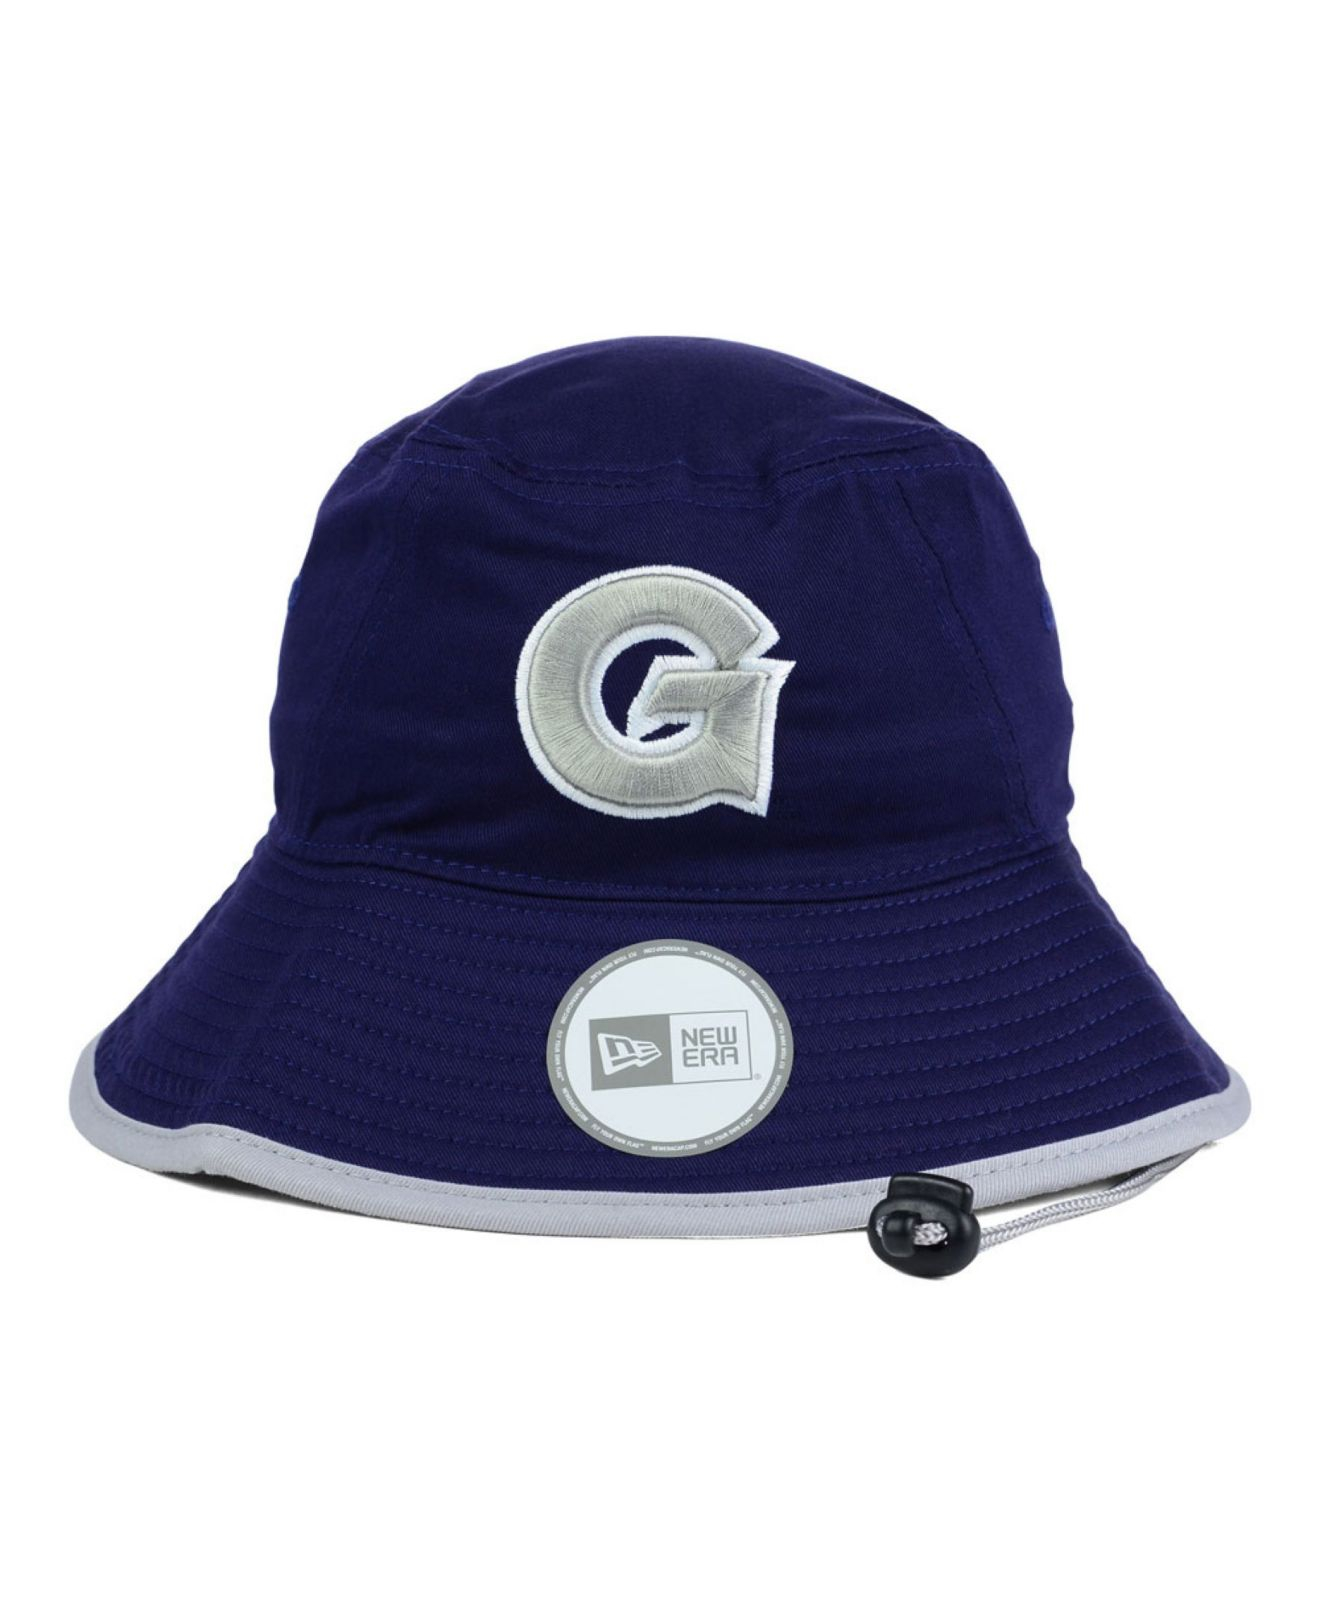 e98a2224f0d40 coupon code for georgetown bucket hat 180a3 00356